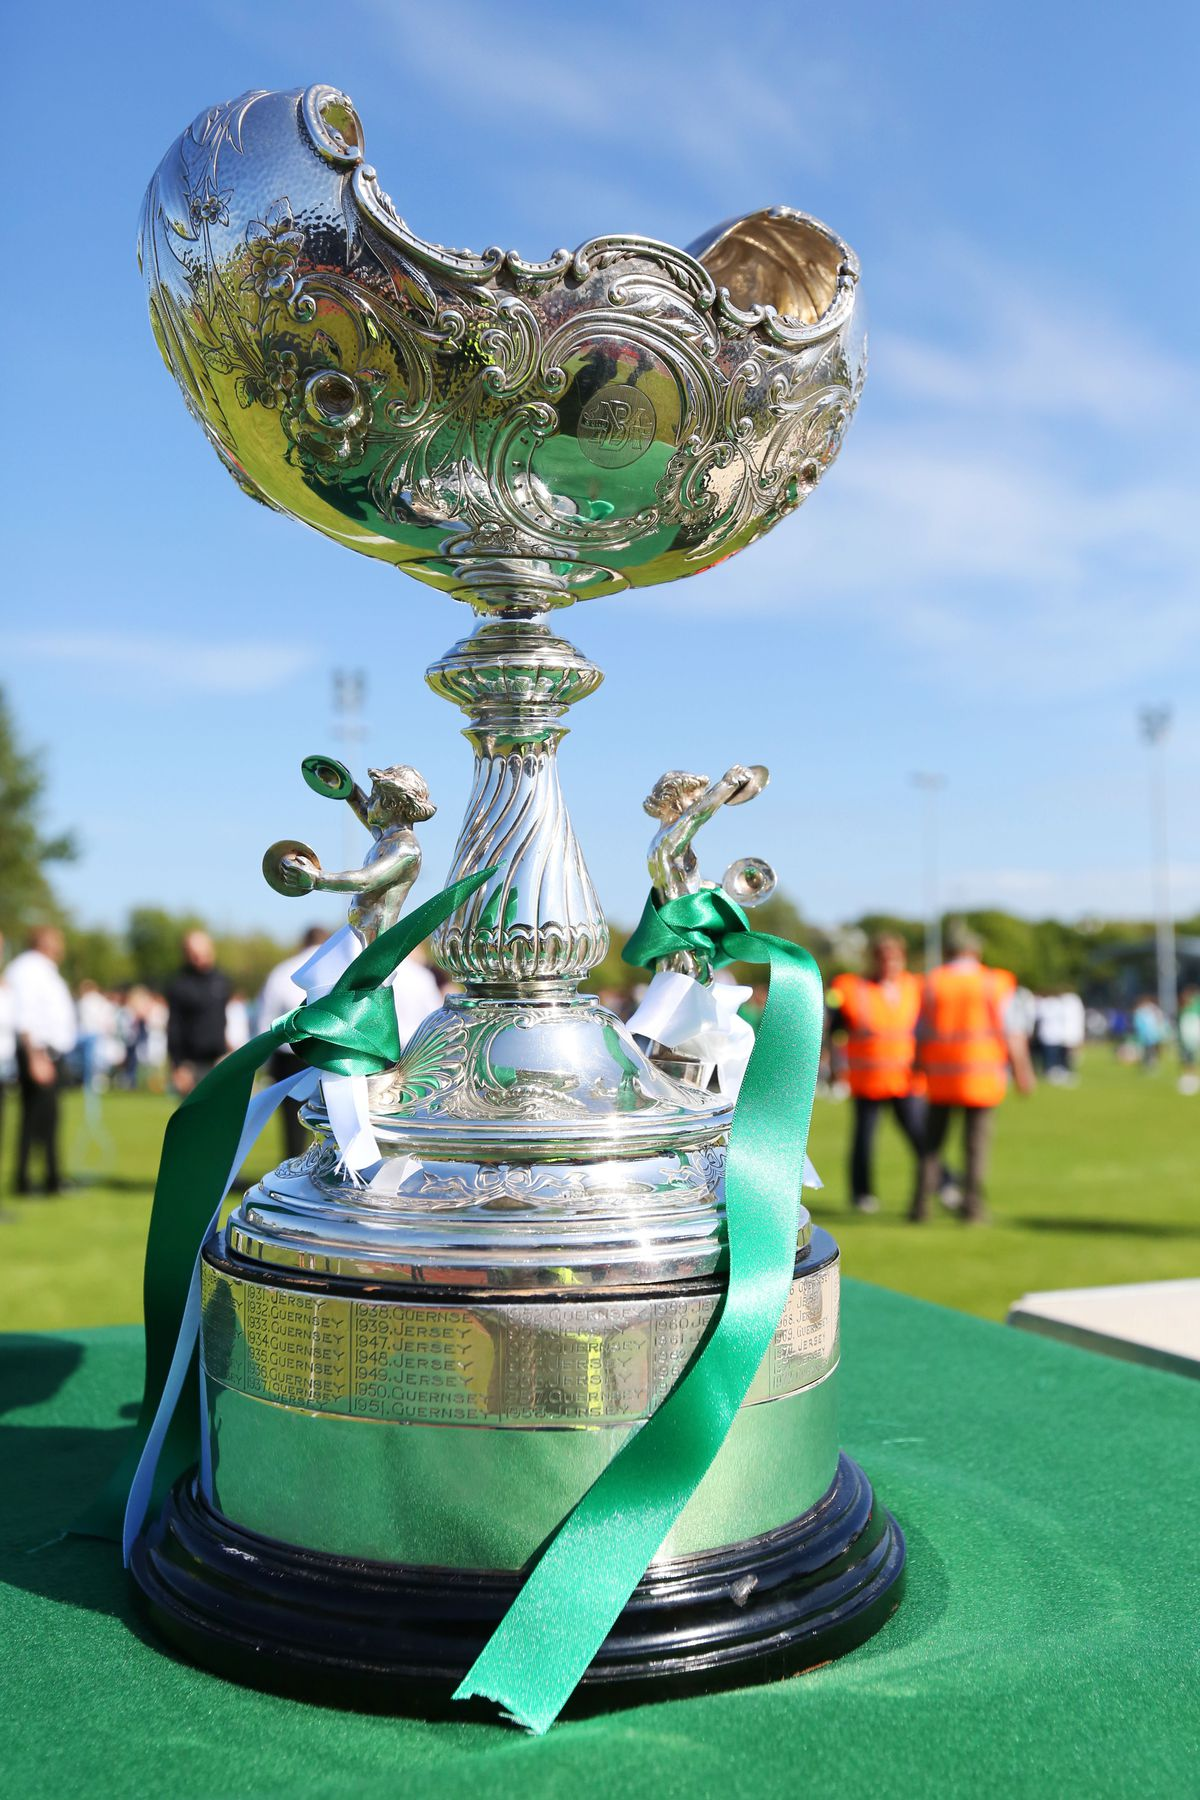 Tie a green ribbon around the old ... The Muratti Vase trophy: By the time the game is played next May it will be four years since it was decorated with green and white ribbons. (28529935)